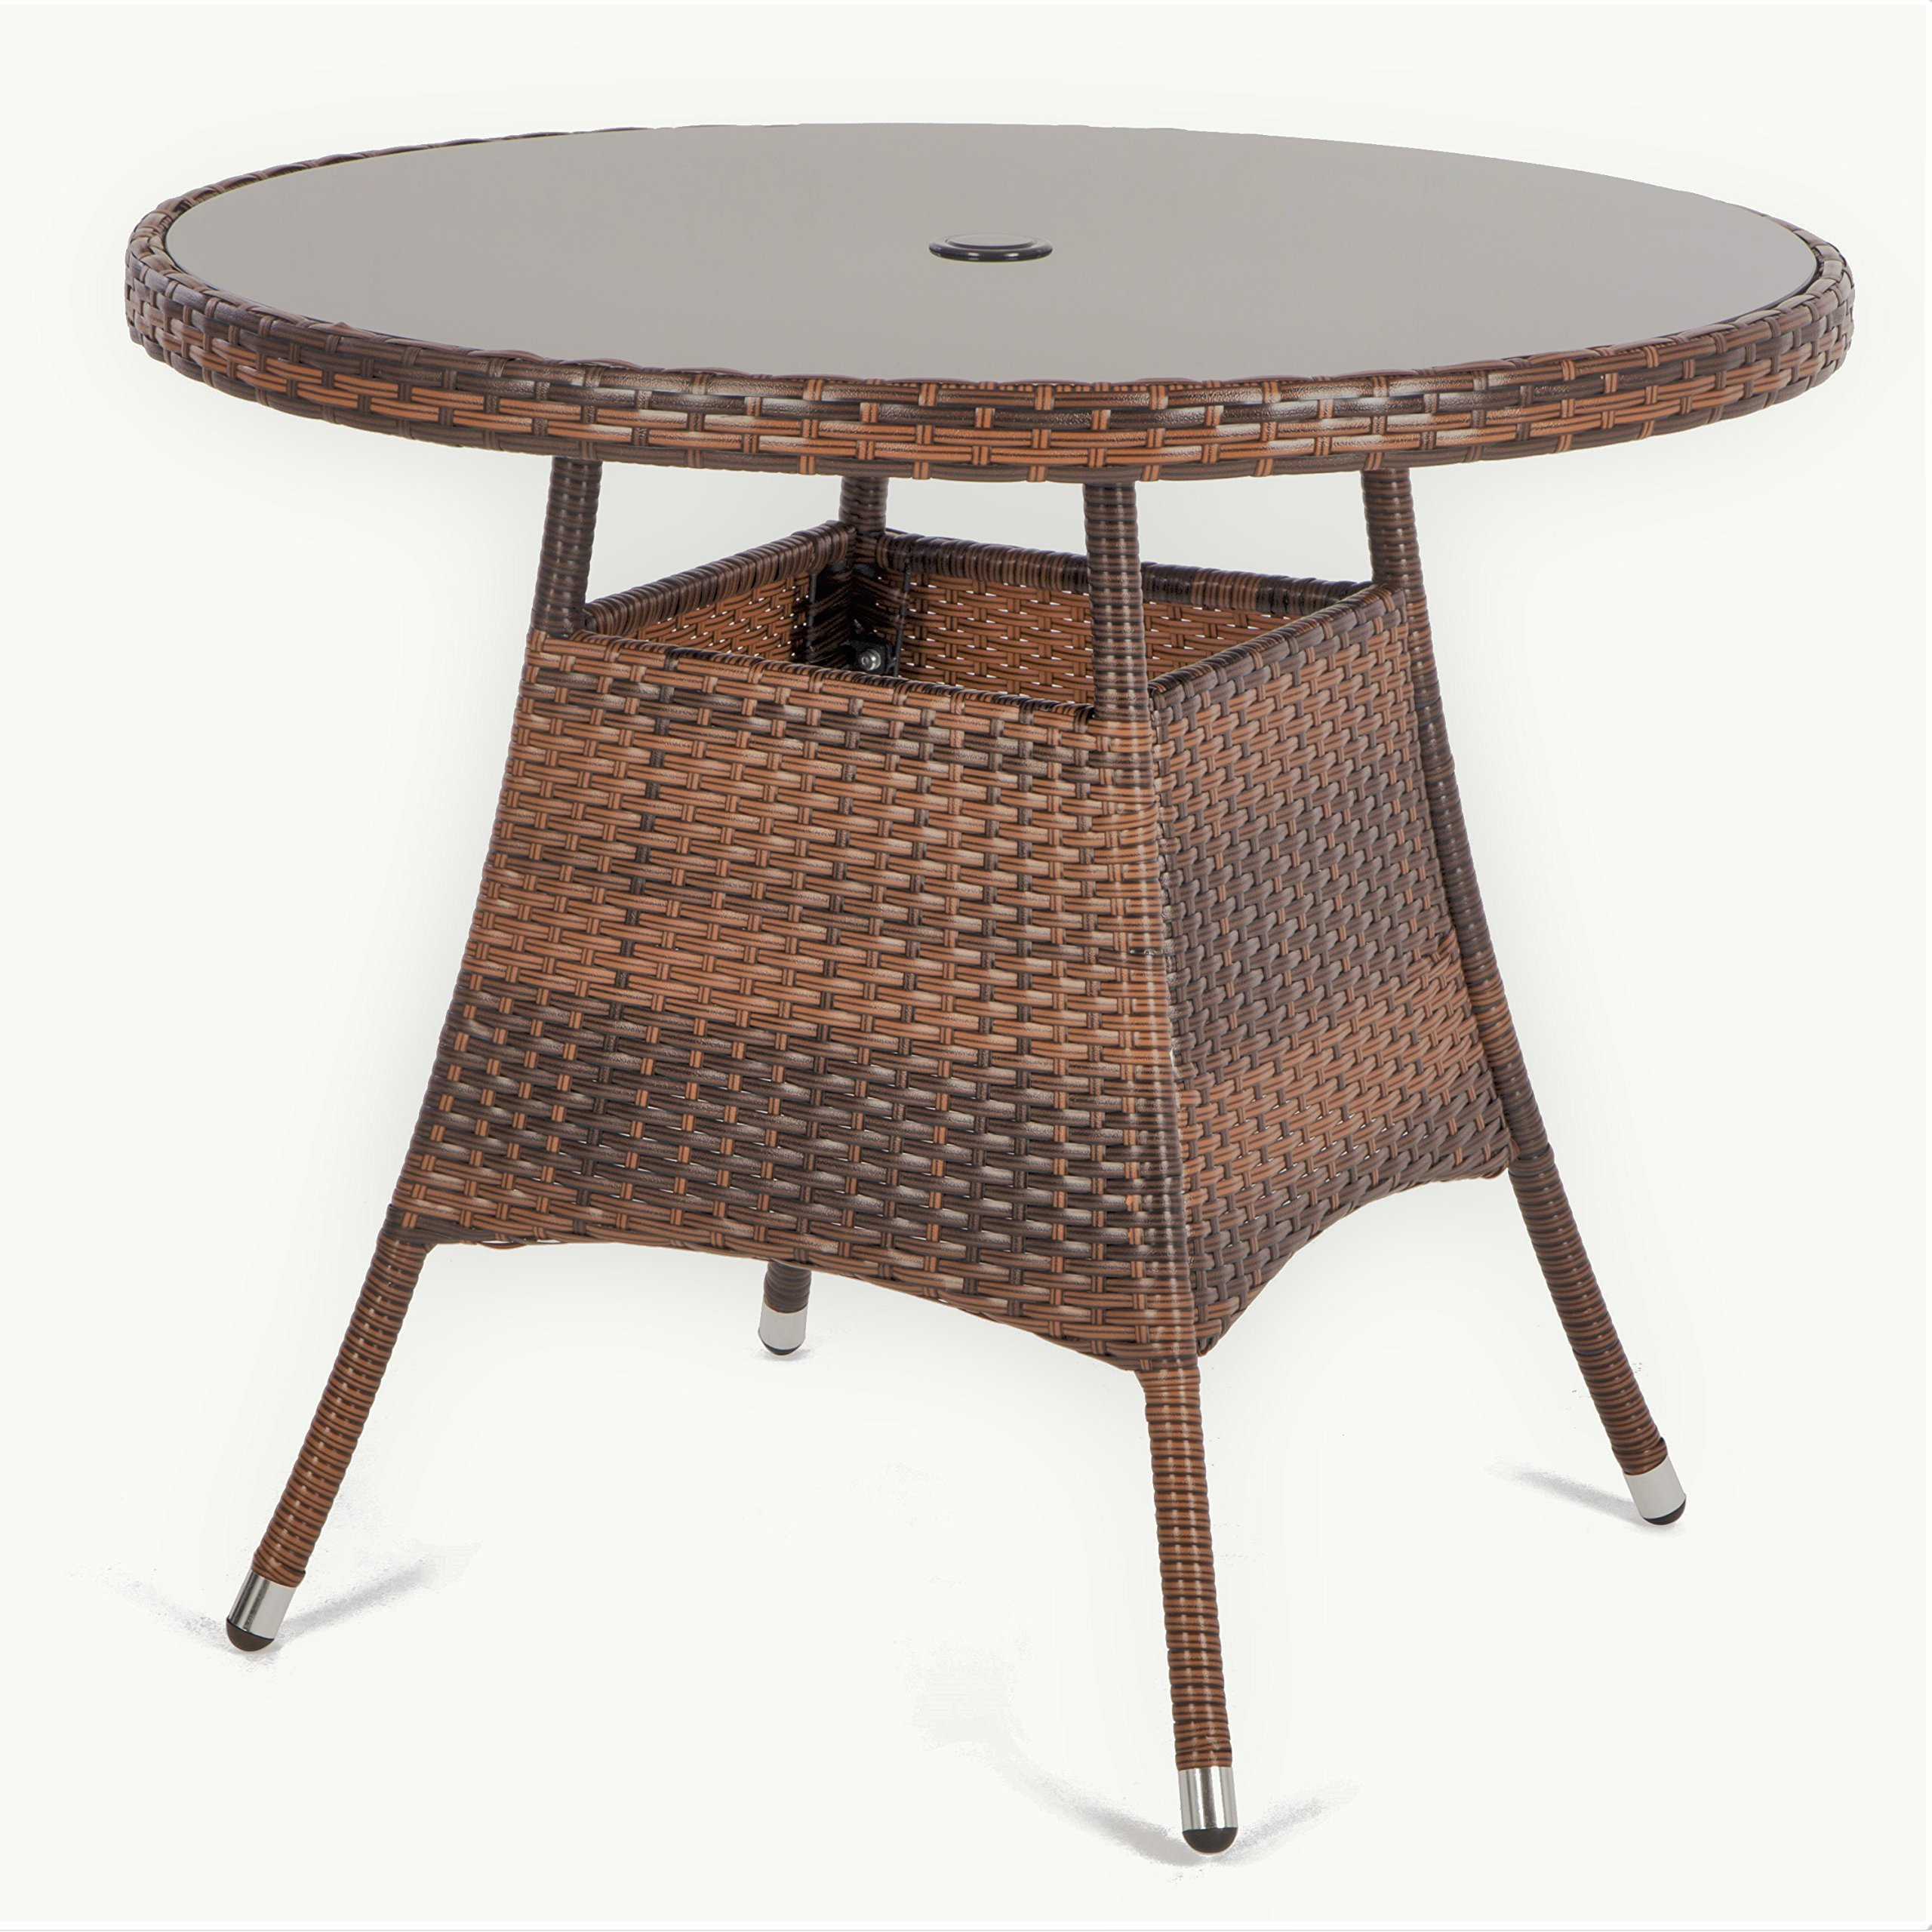 LUCKUP 36'' Patio Outdoor Wicker Rattan Dining Table Tempered Glass Top Umbrella Stand Round Table, Brown